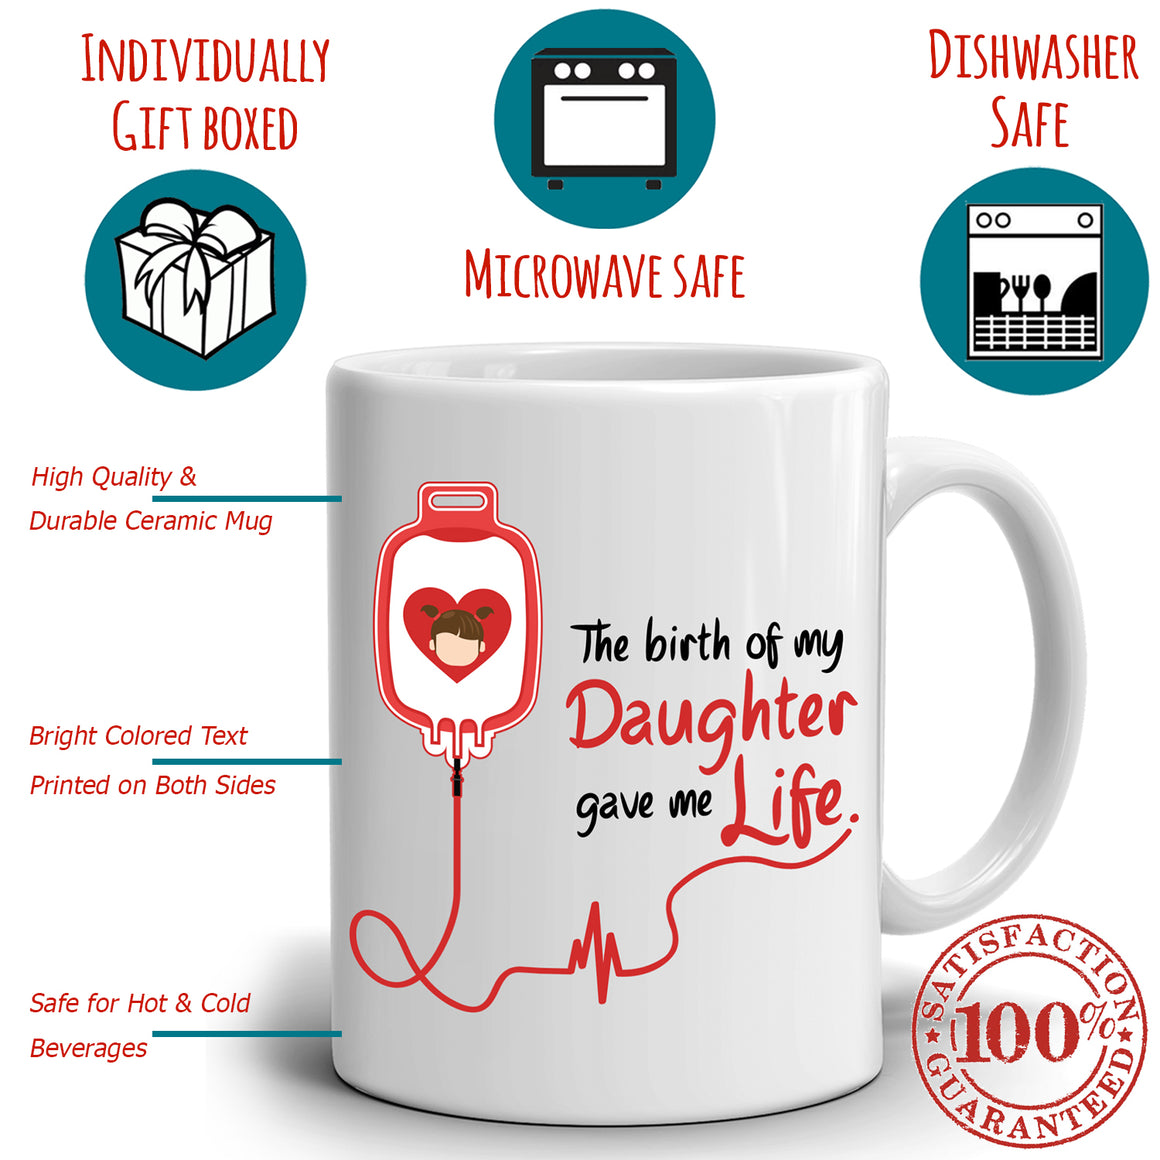 Inspirational Moms and Daughters Gifts Mug The Birth Of My Daughter Gave Me Life, Printed on Both Sides!